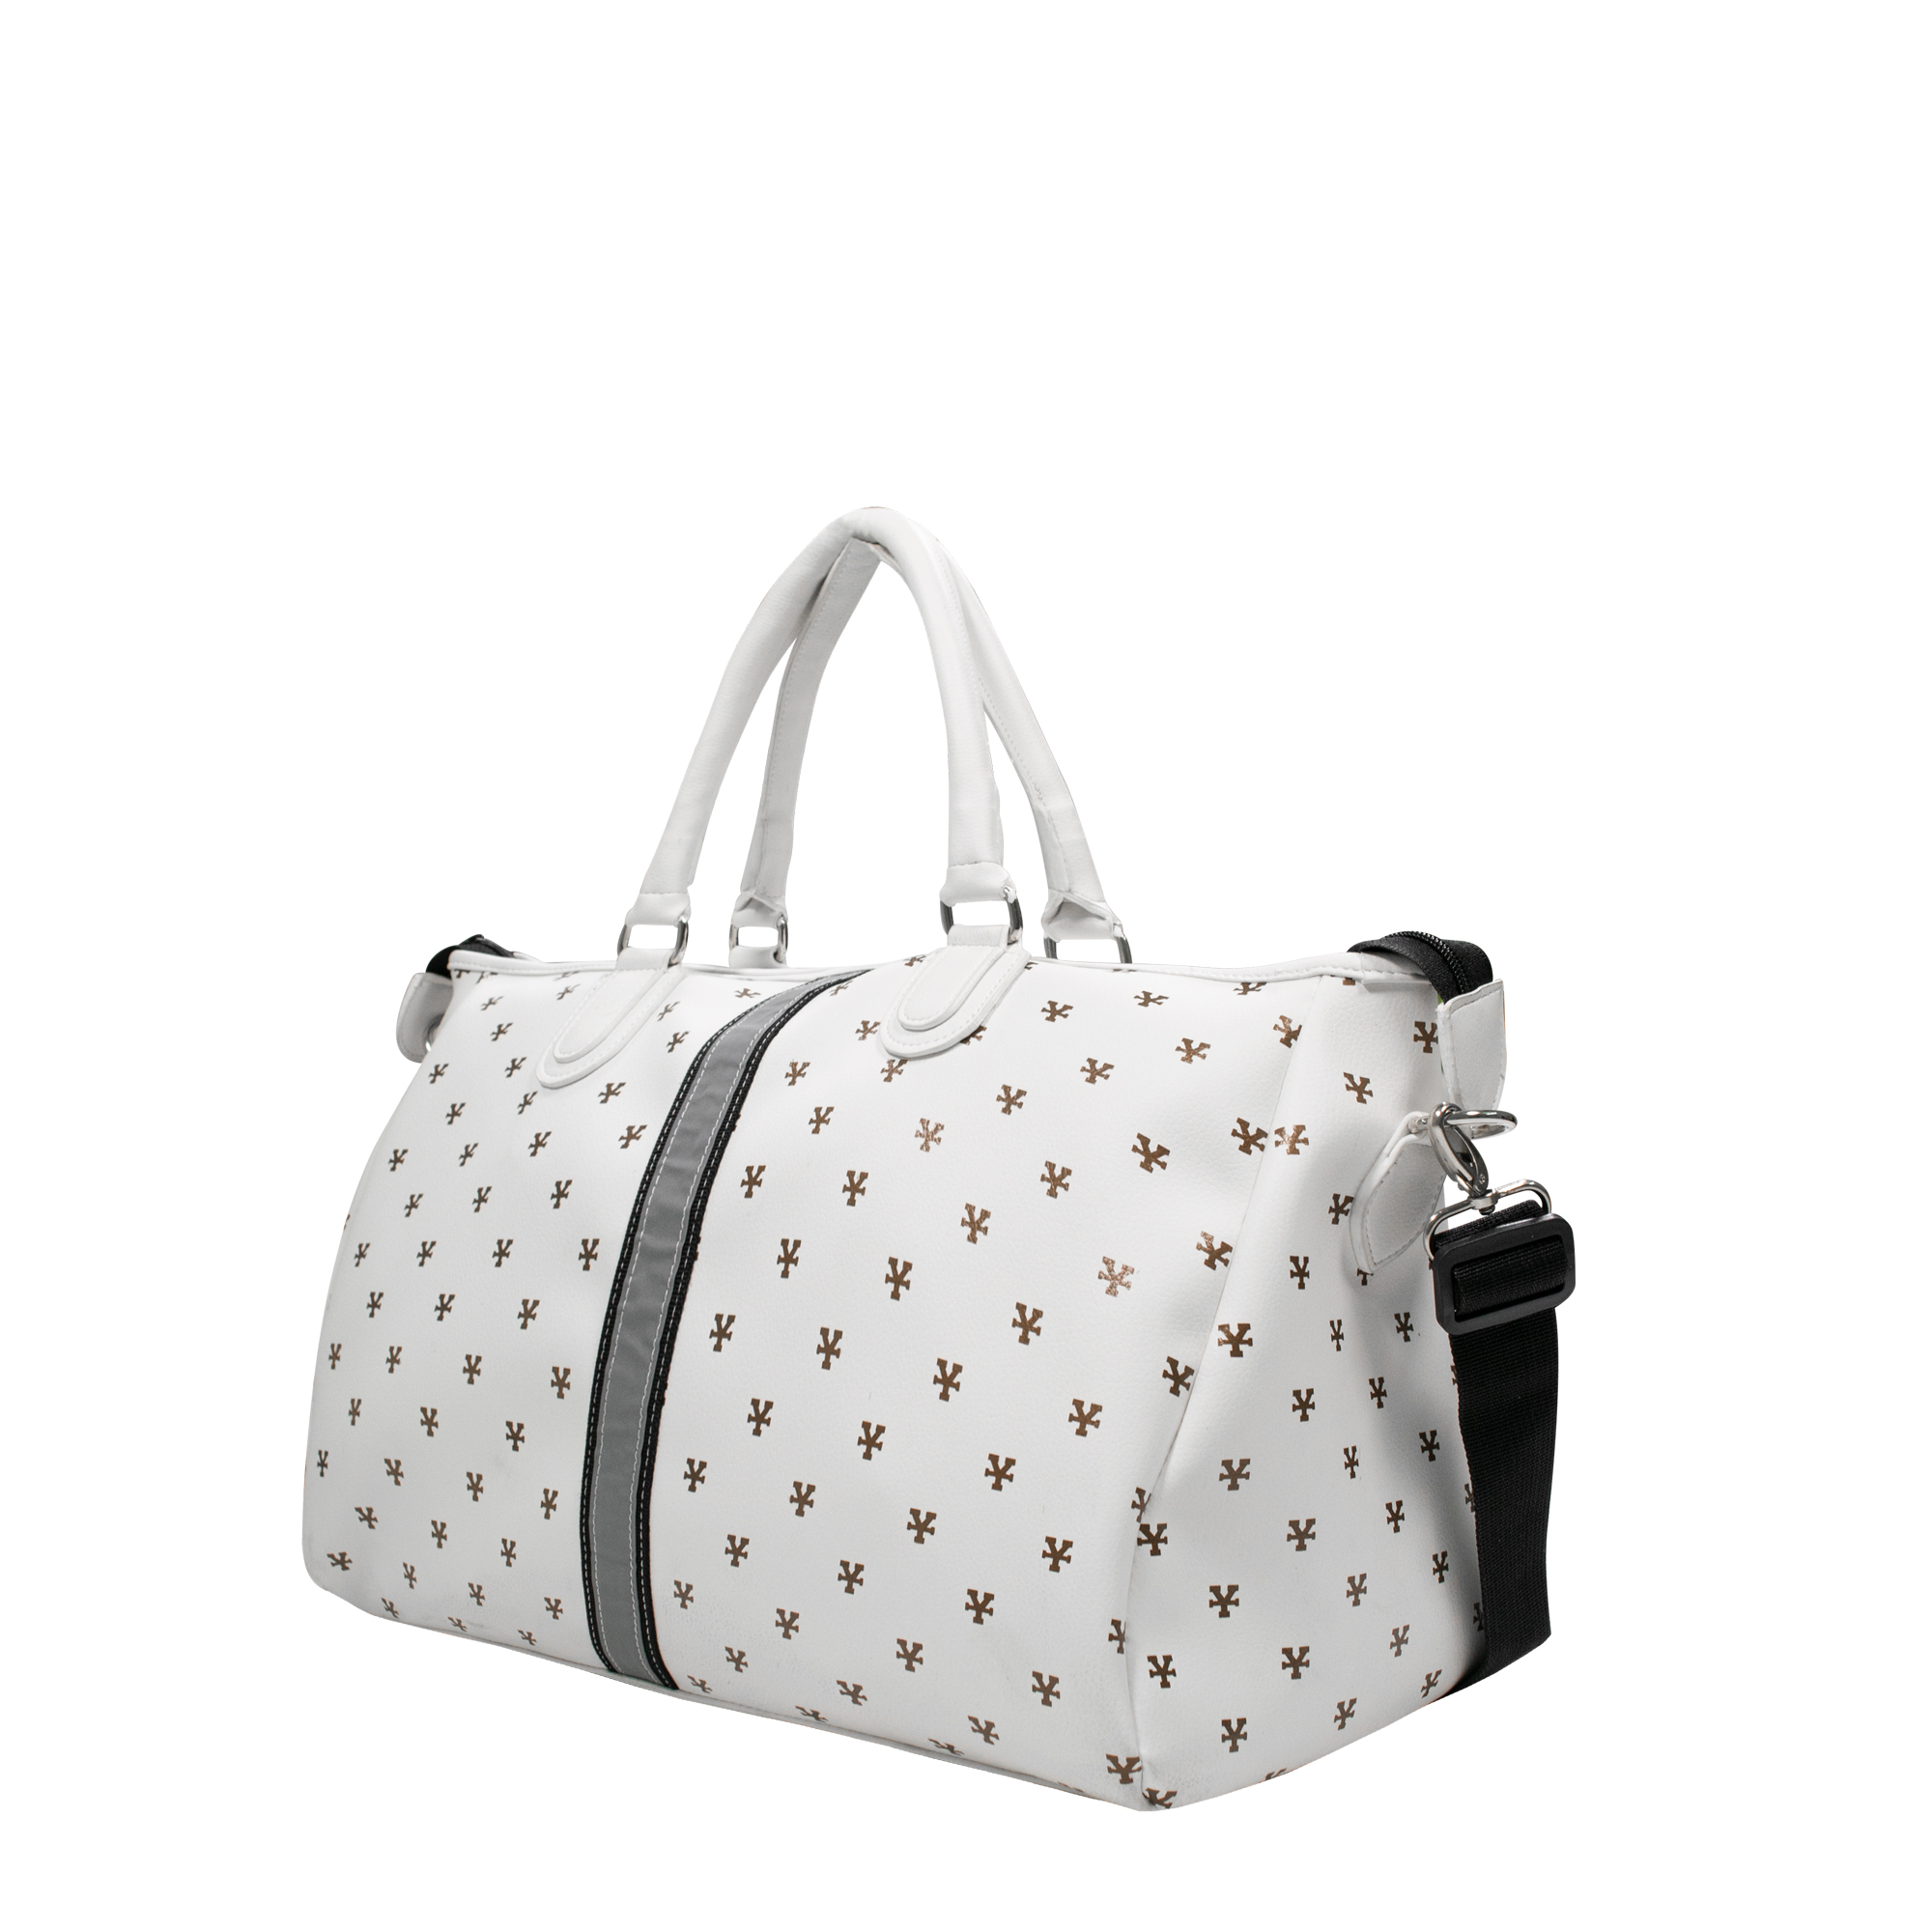 DirtyCoins Logo Pattern Bowler Bag - White